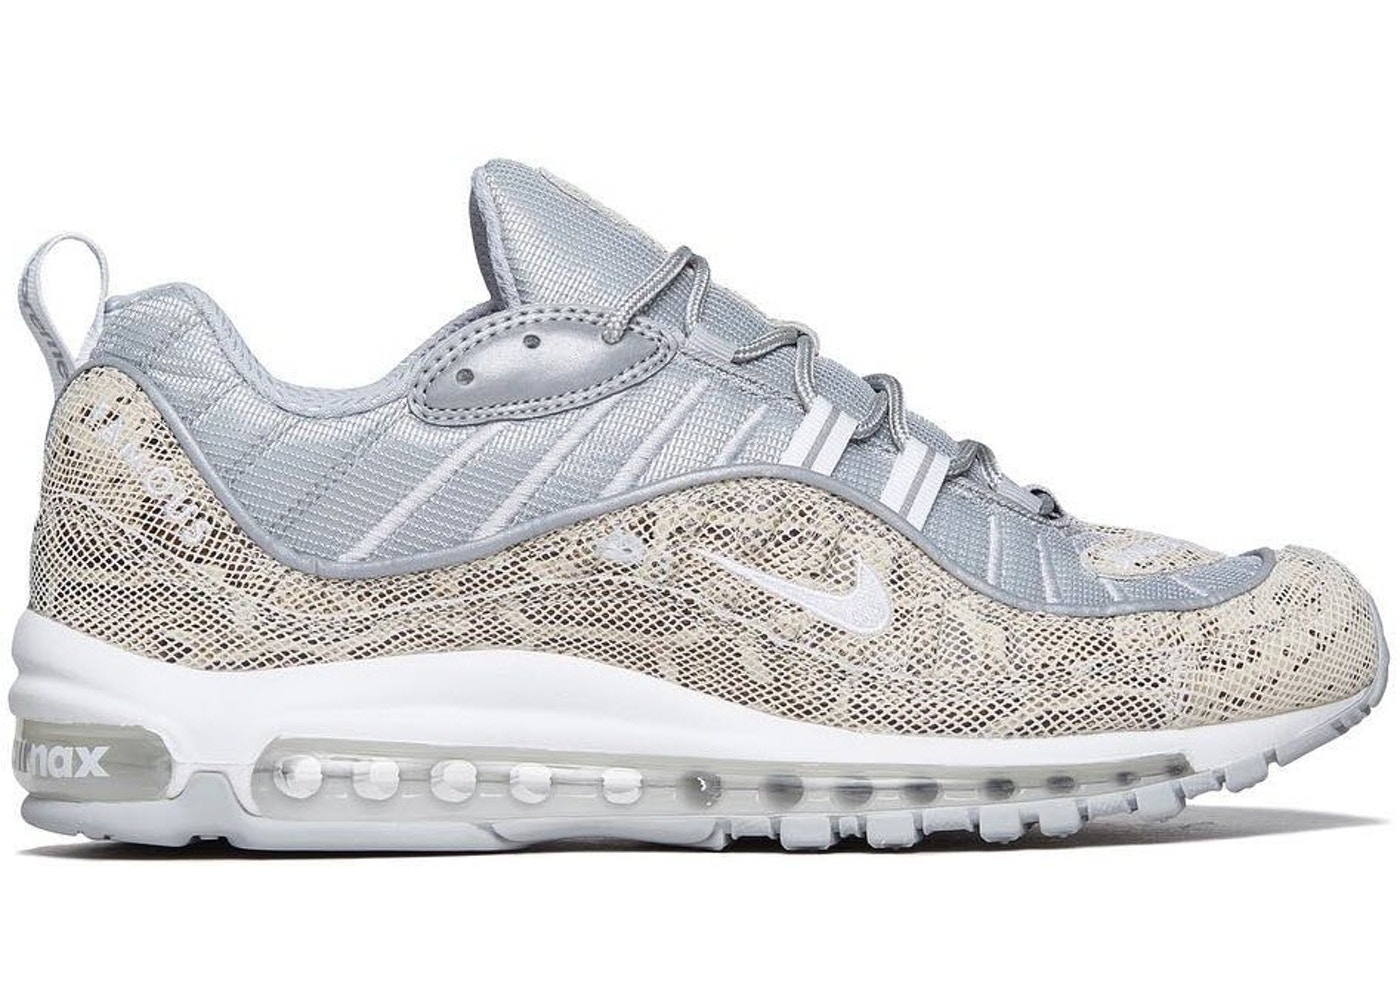 official photos d1542 d4823 Air Max 98 Supreme Snakeskin